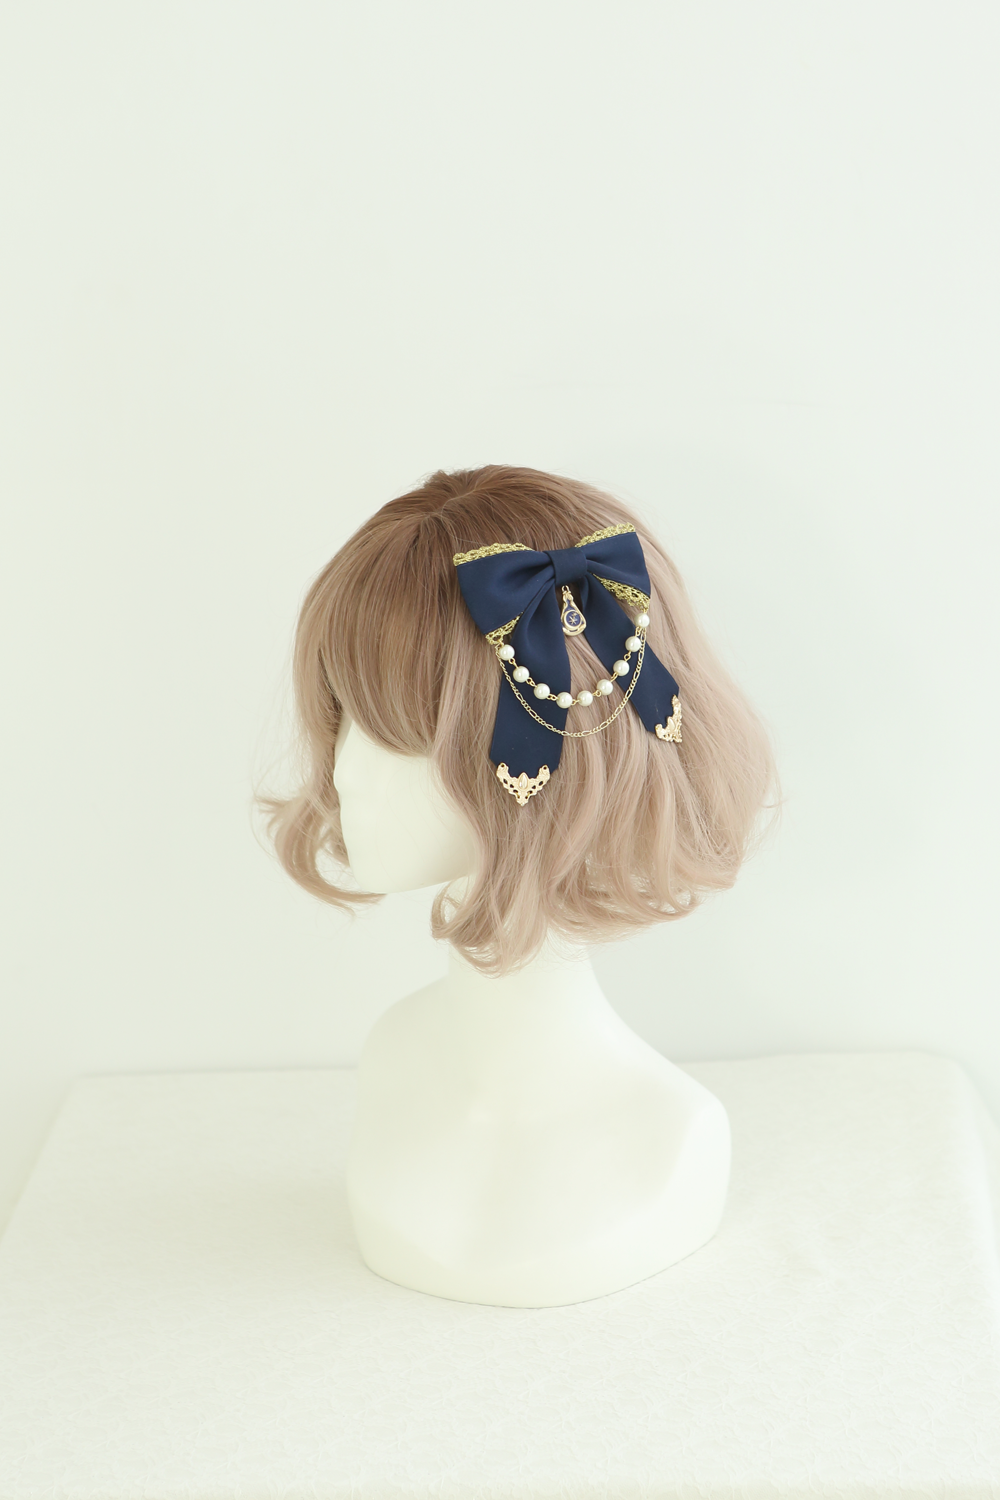 TaobaoRing 【HONEYHONEY】 Astrology cat small objects fall page KC / BB / side clip / belt / bowknot - Taobao